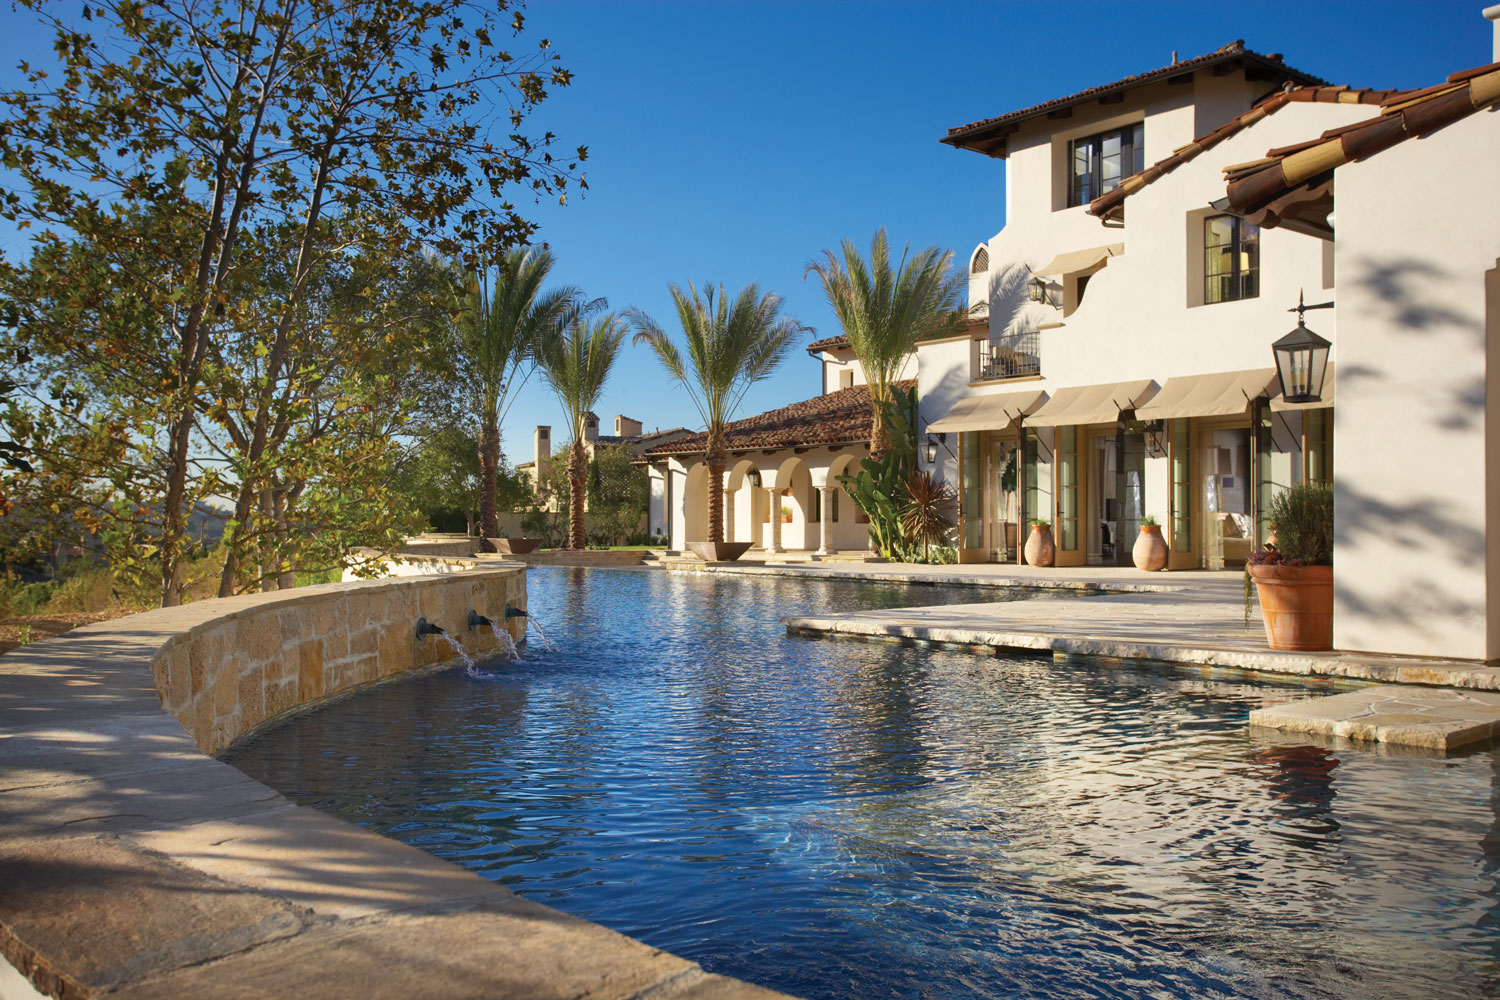 Contemporary-Spanish-Rear-Yard-Pool-Corbin-Reeves.jpg